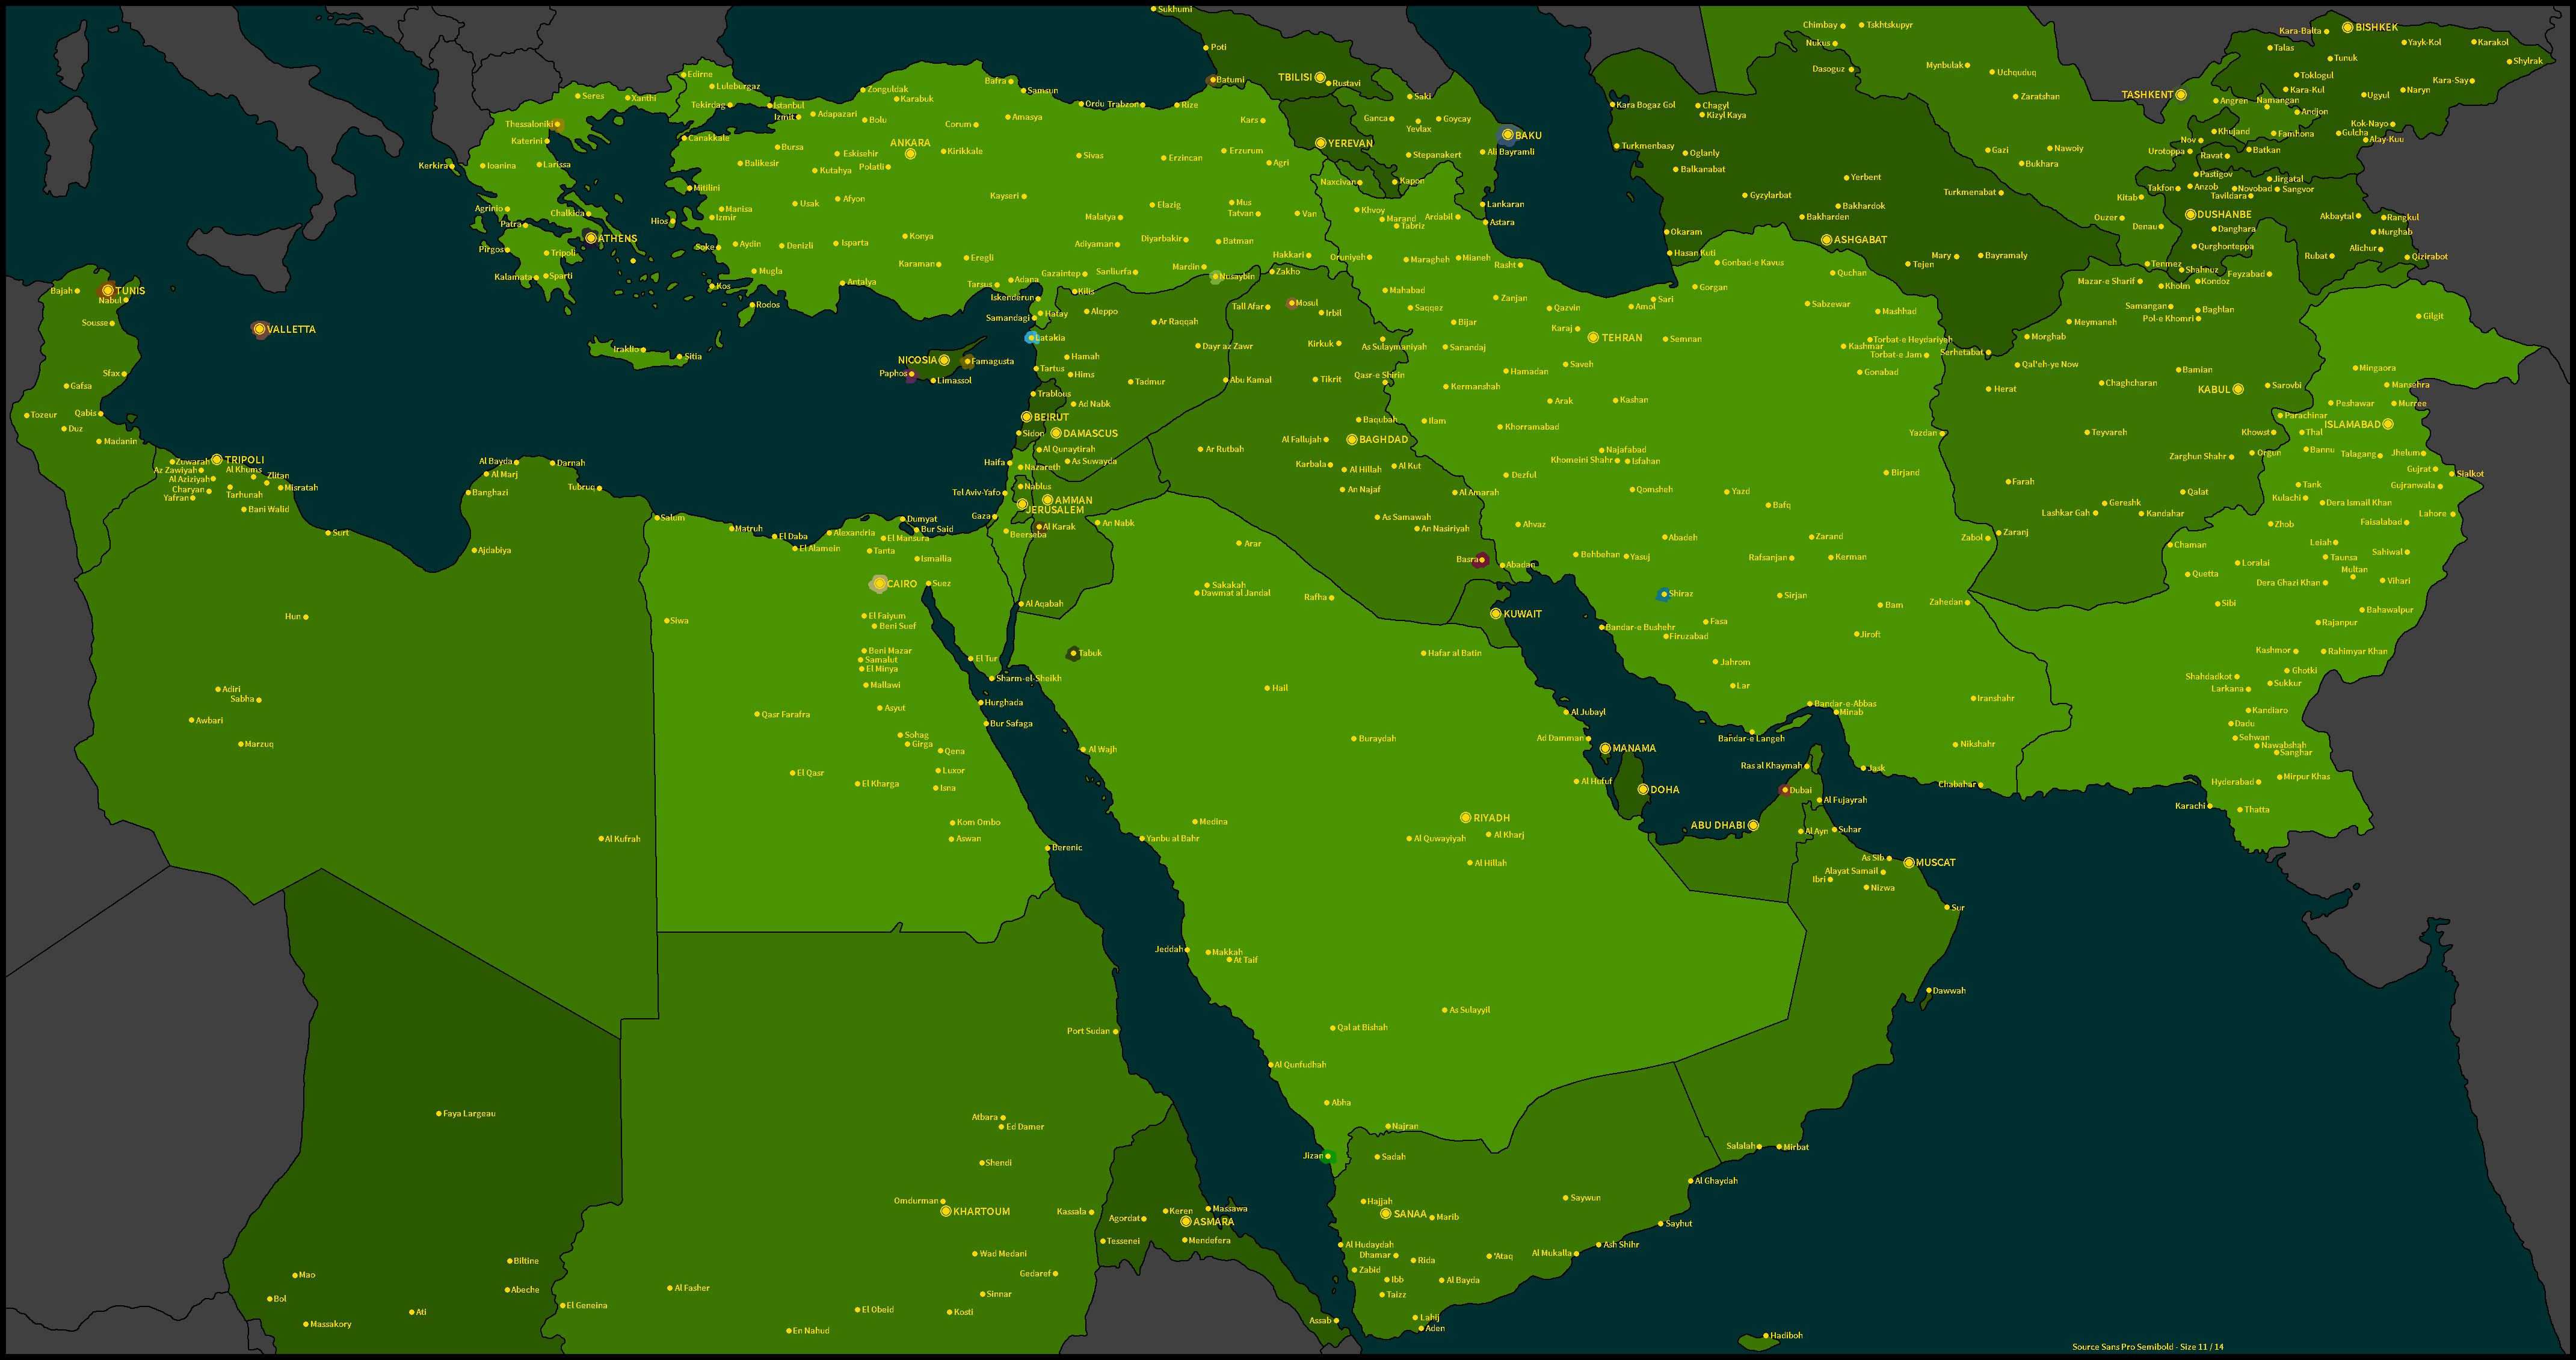 Insurgency Middle East Map Game TheFutureOfEuropes Wiki - Middle east map dushanbe